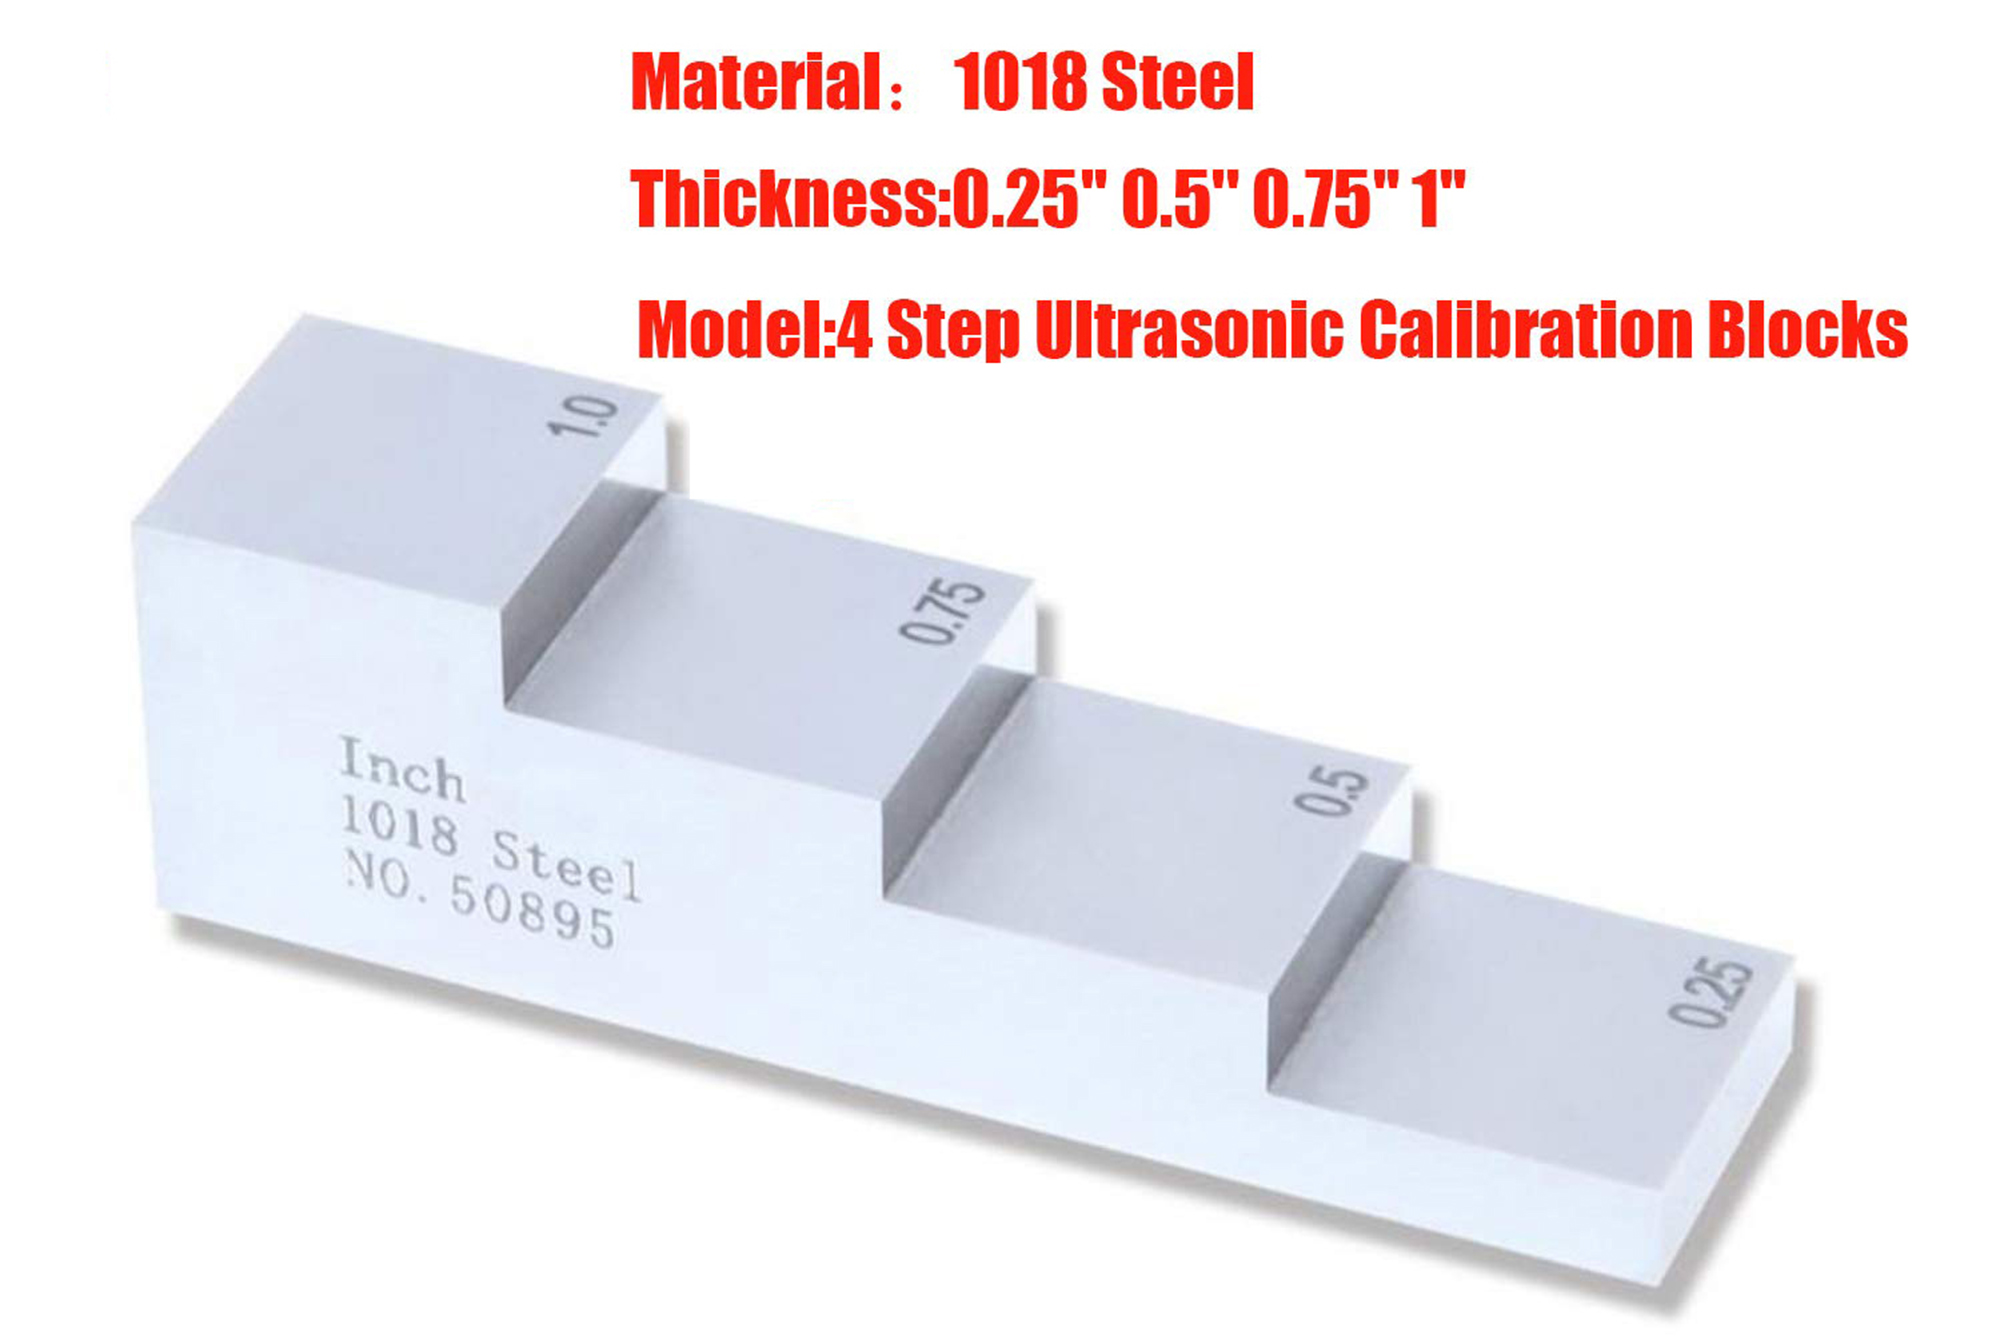 Ultrasonic Thickness Gauge 4 Step Calibration Block NDT Testing with 1018 Steel 0.25'' 0.5'' 0.75'' 1''